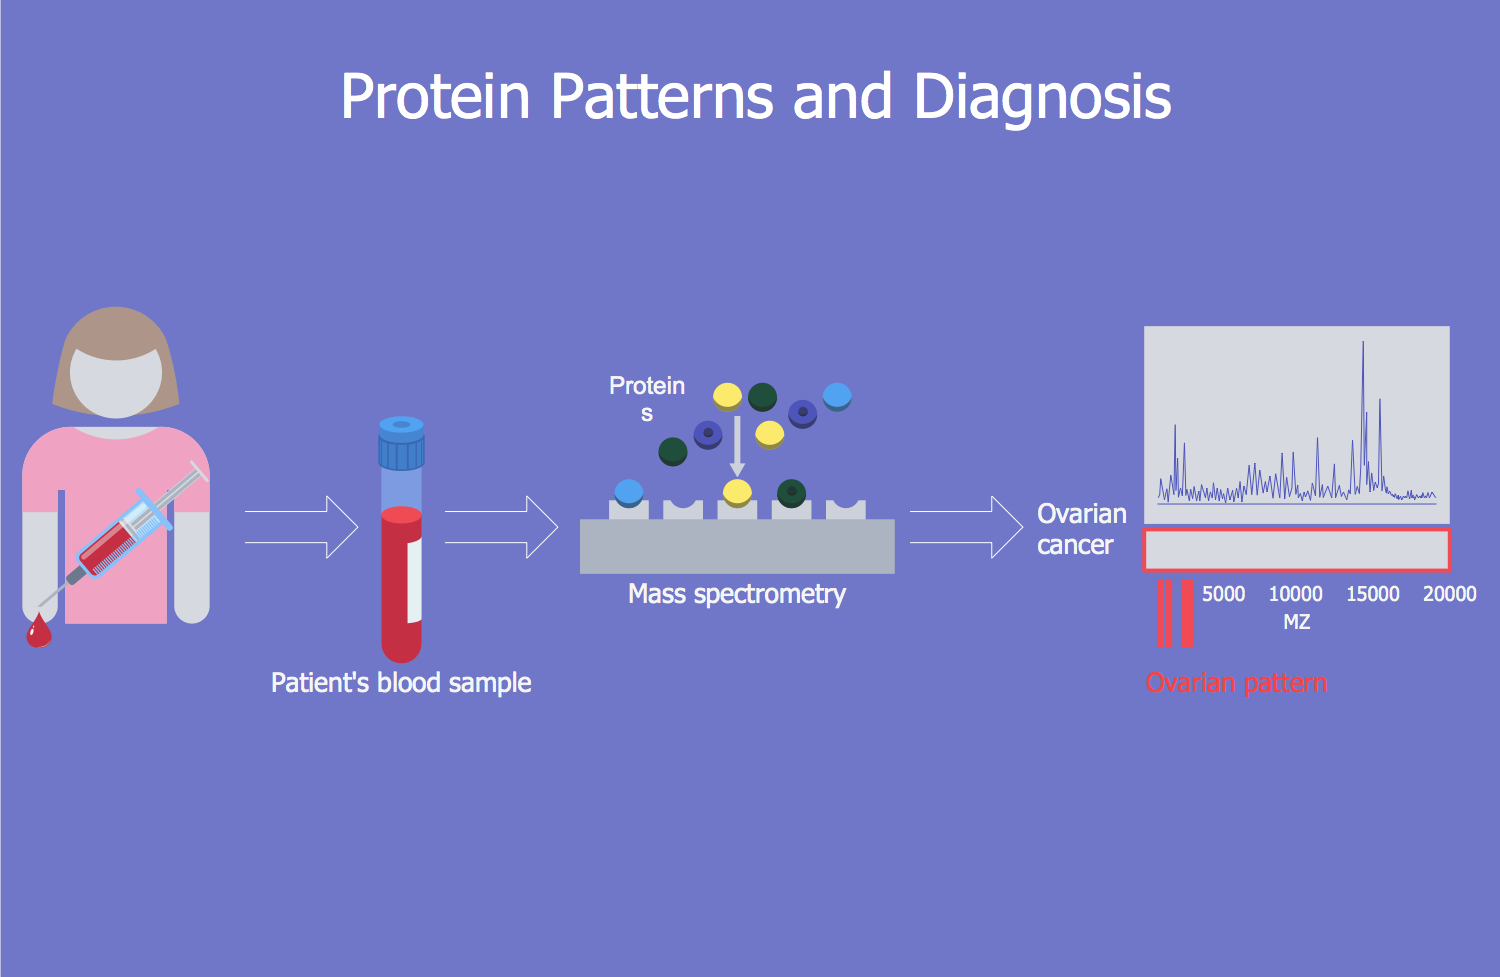 Protein Patterns and Diagnosis